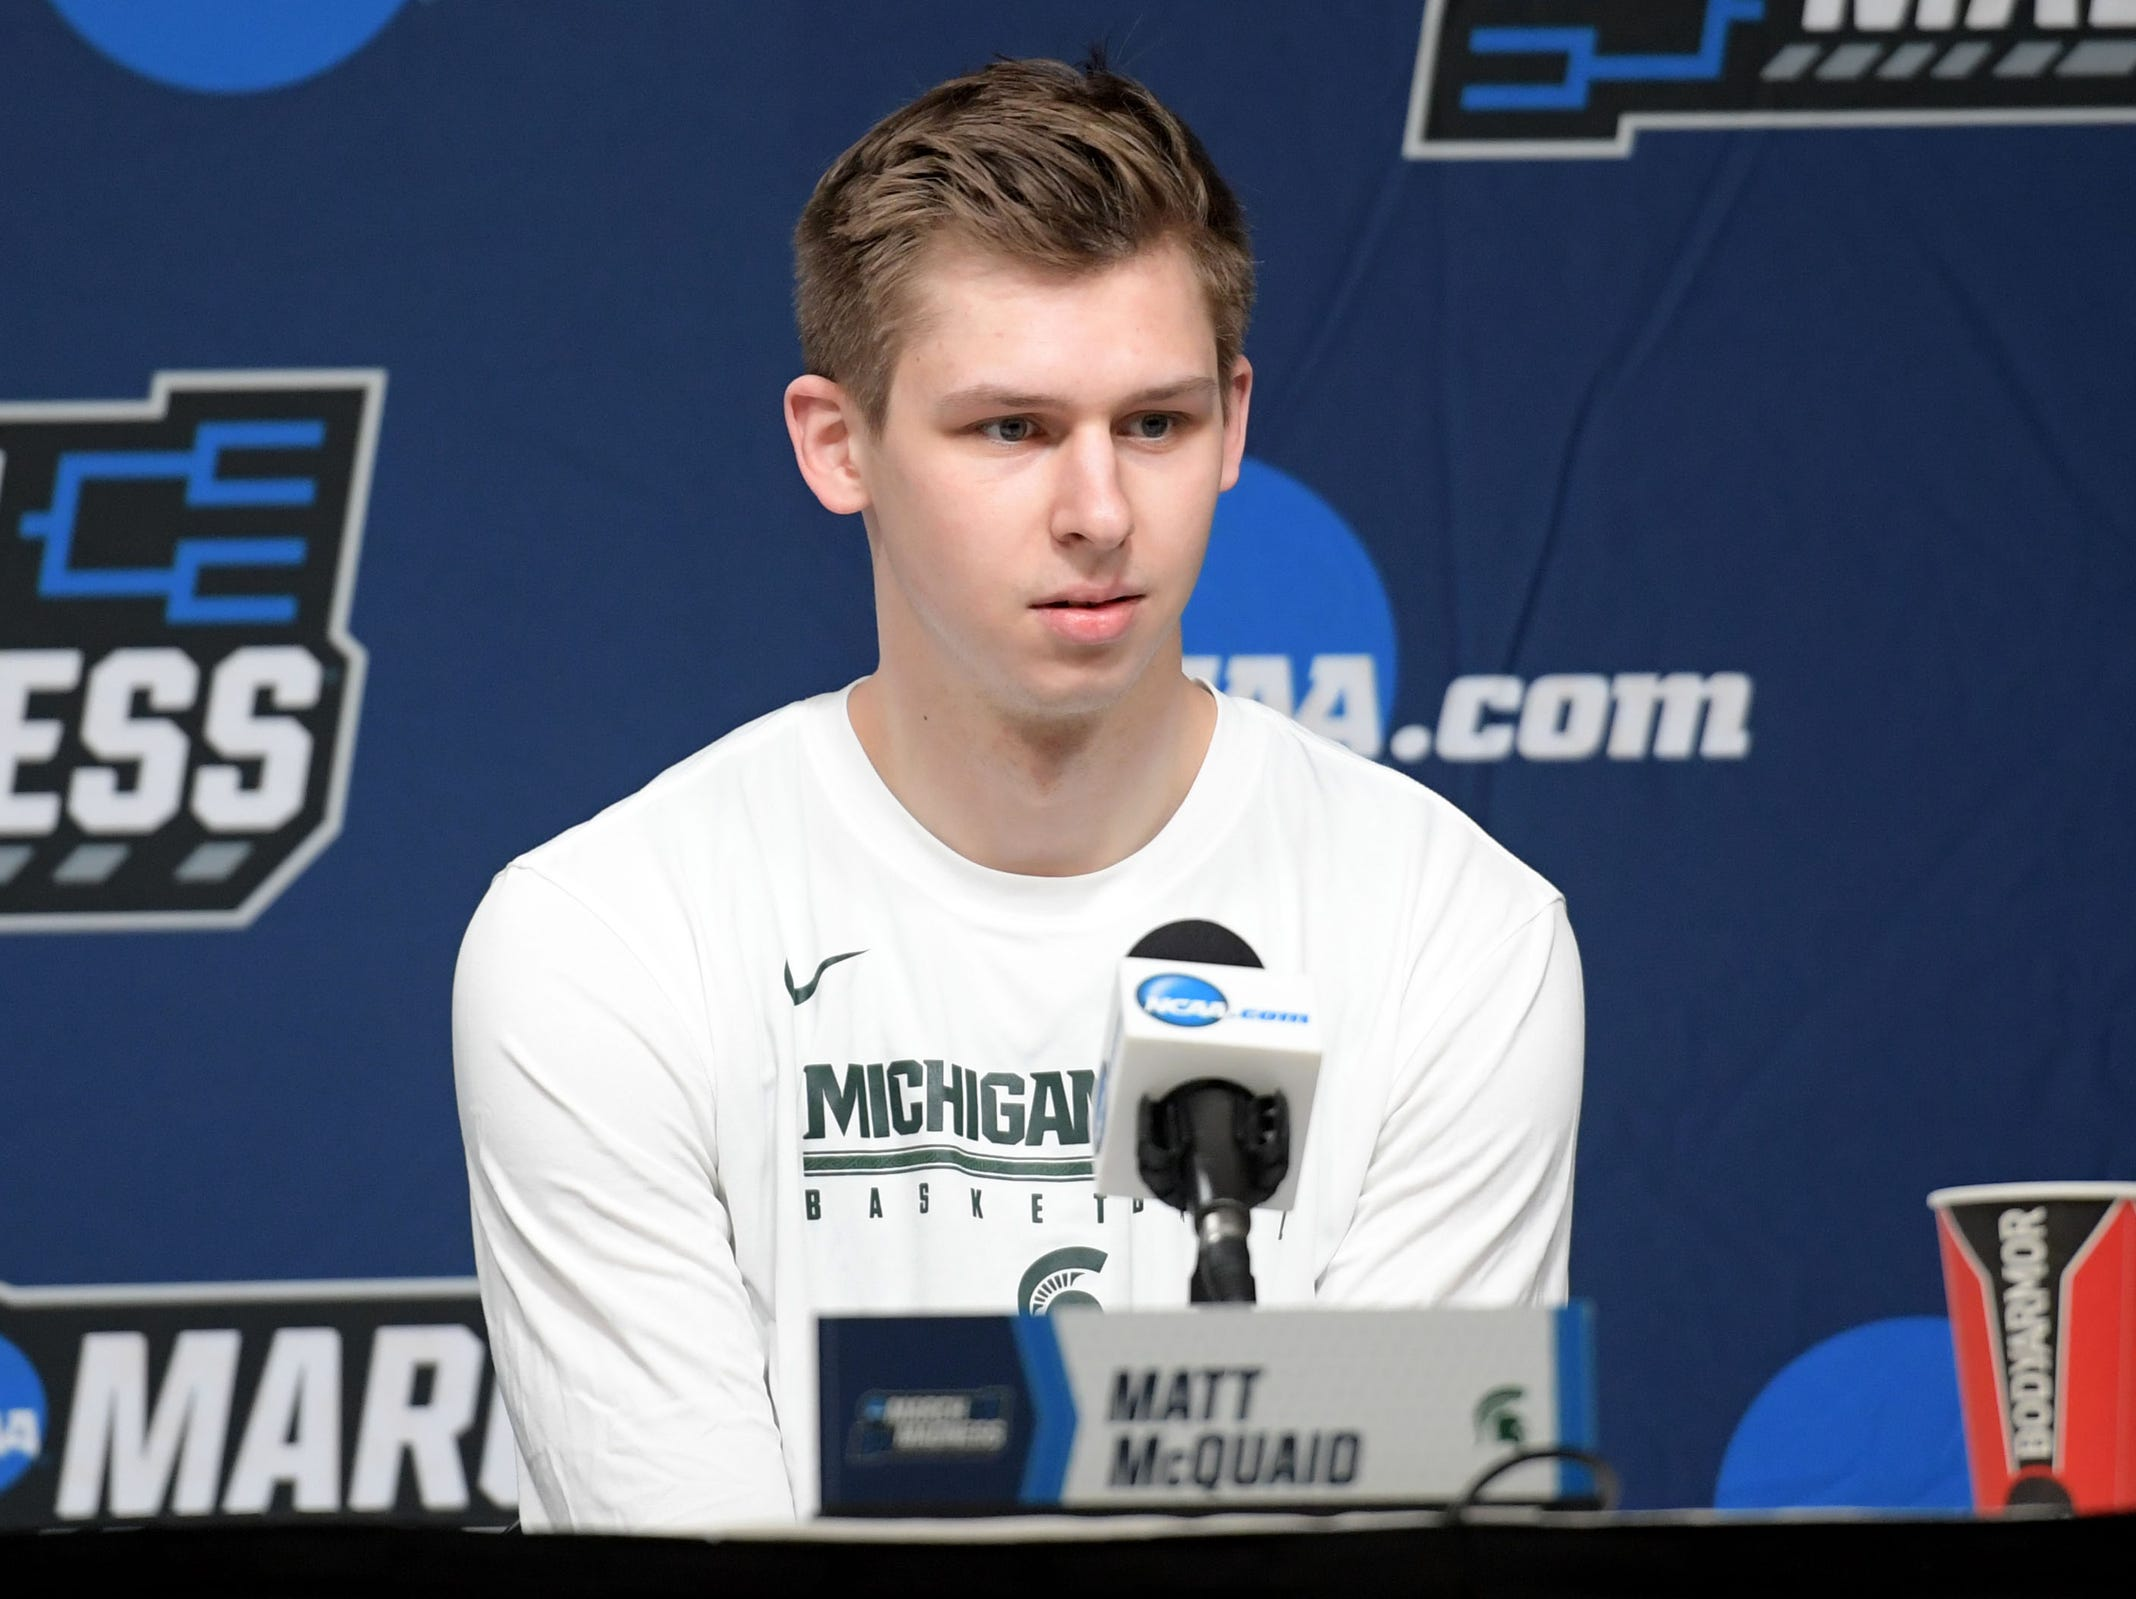 Mar 20, 2019; Des Moines, IA, USA; Michigan State Spartans guard Matt McQuaid (20) speaks in a press conference during practice before the first round of the 2019 NCAA Tournament at Wells Fargo Arena. Mandatory Credit: Steven Branscombe-USA TODAY Sports